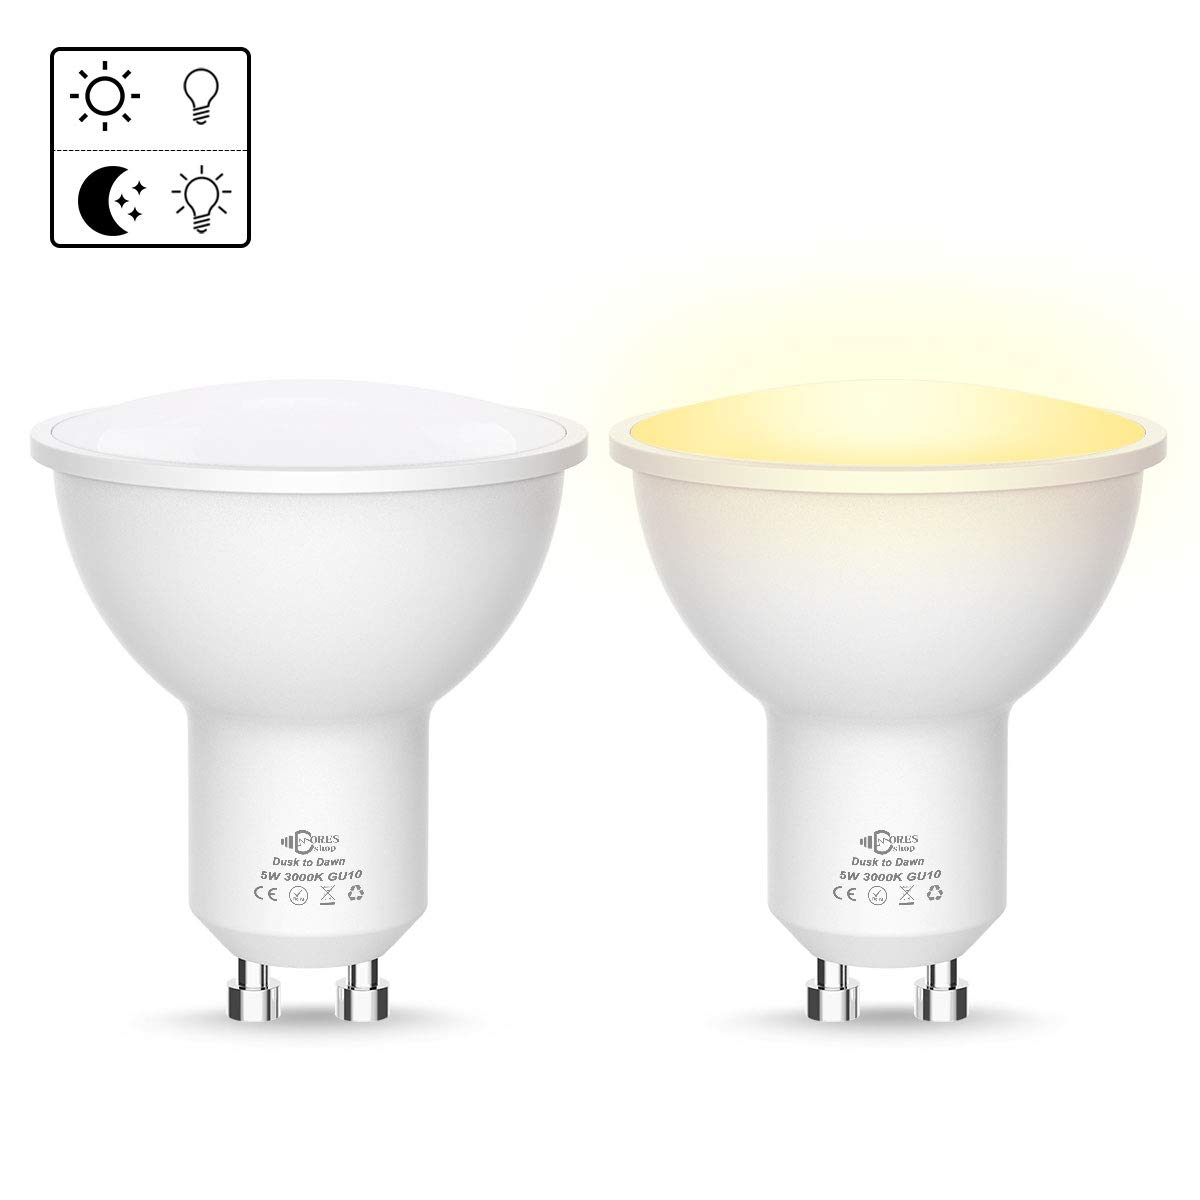 5W GU10 LED Dusk Till Dawn Light Bulbs